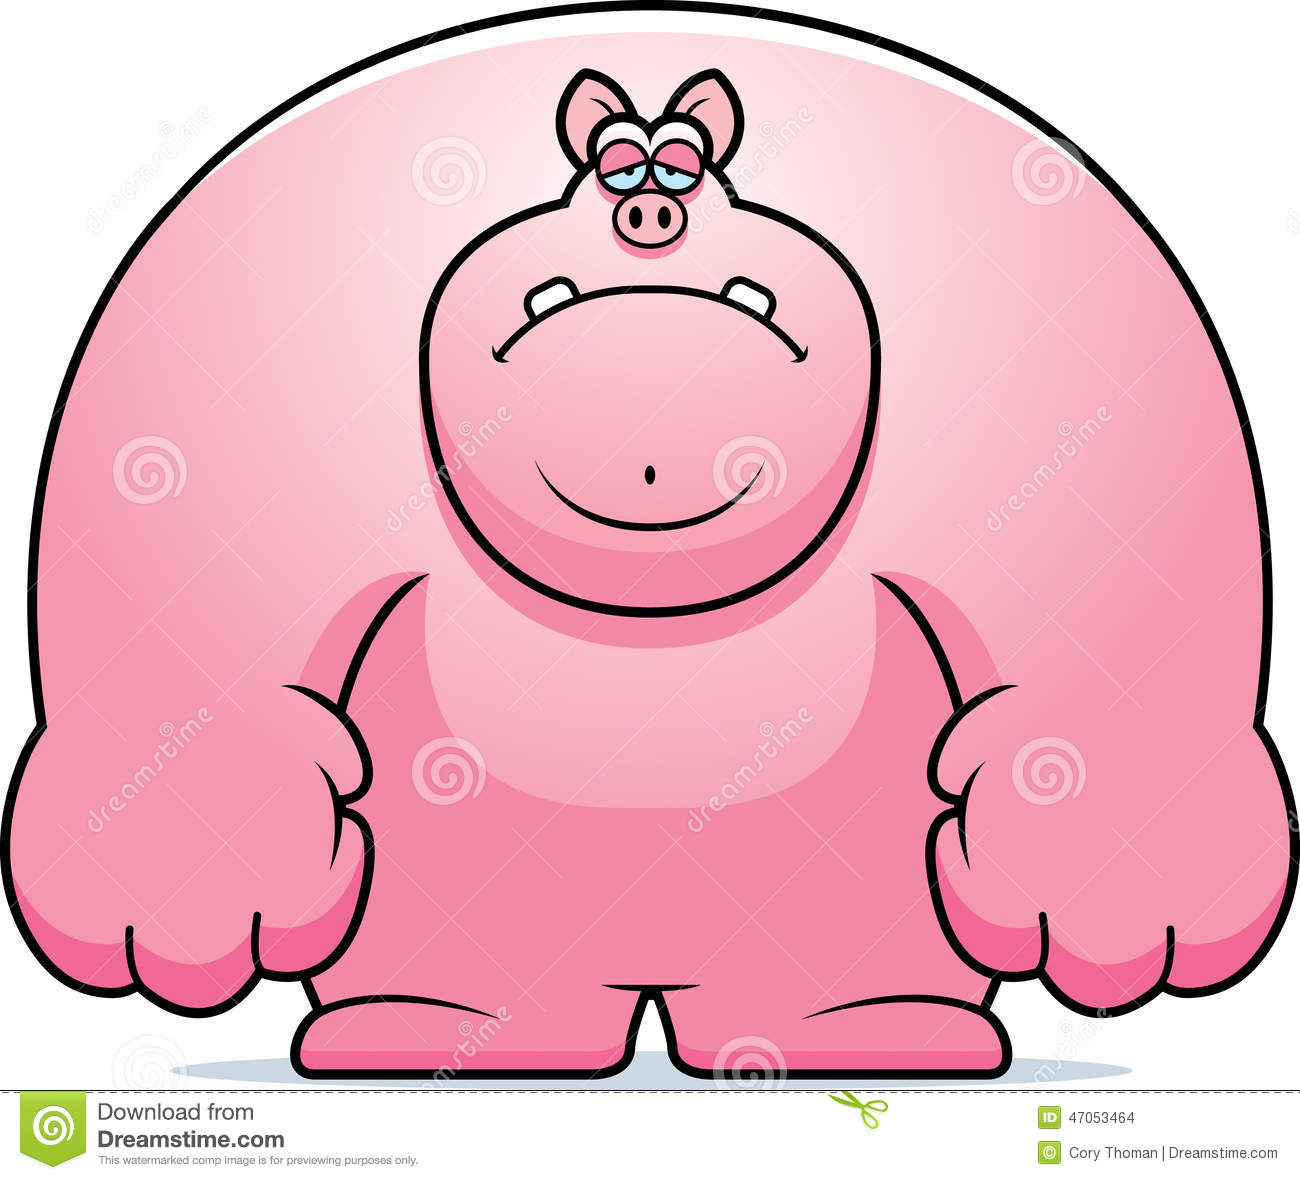 Sad Pig Stock Photos, Images, & Pictures – (357 Images)